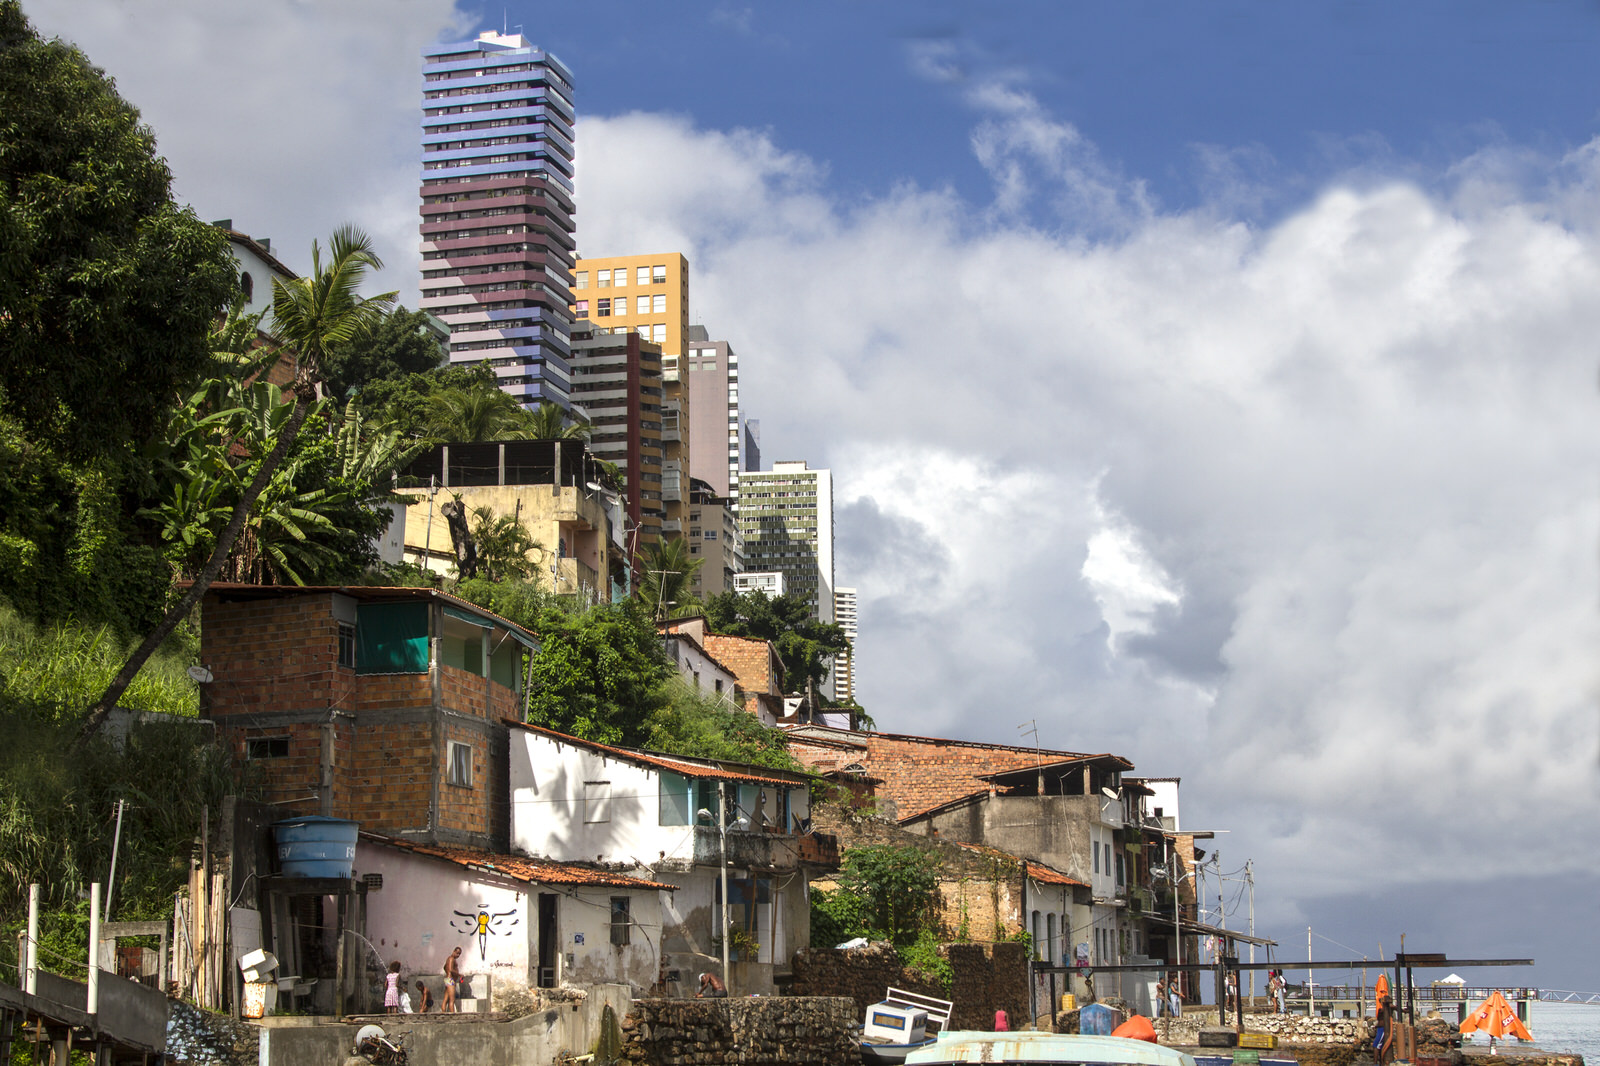 Luxury high-rise blocks overlook Gamboa de Baixo. This community has been segregated partly because of the construction of the Avenue Contorno, a large motorway that seperates the community from the city.